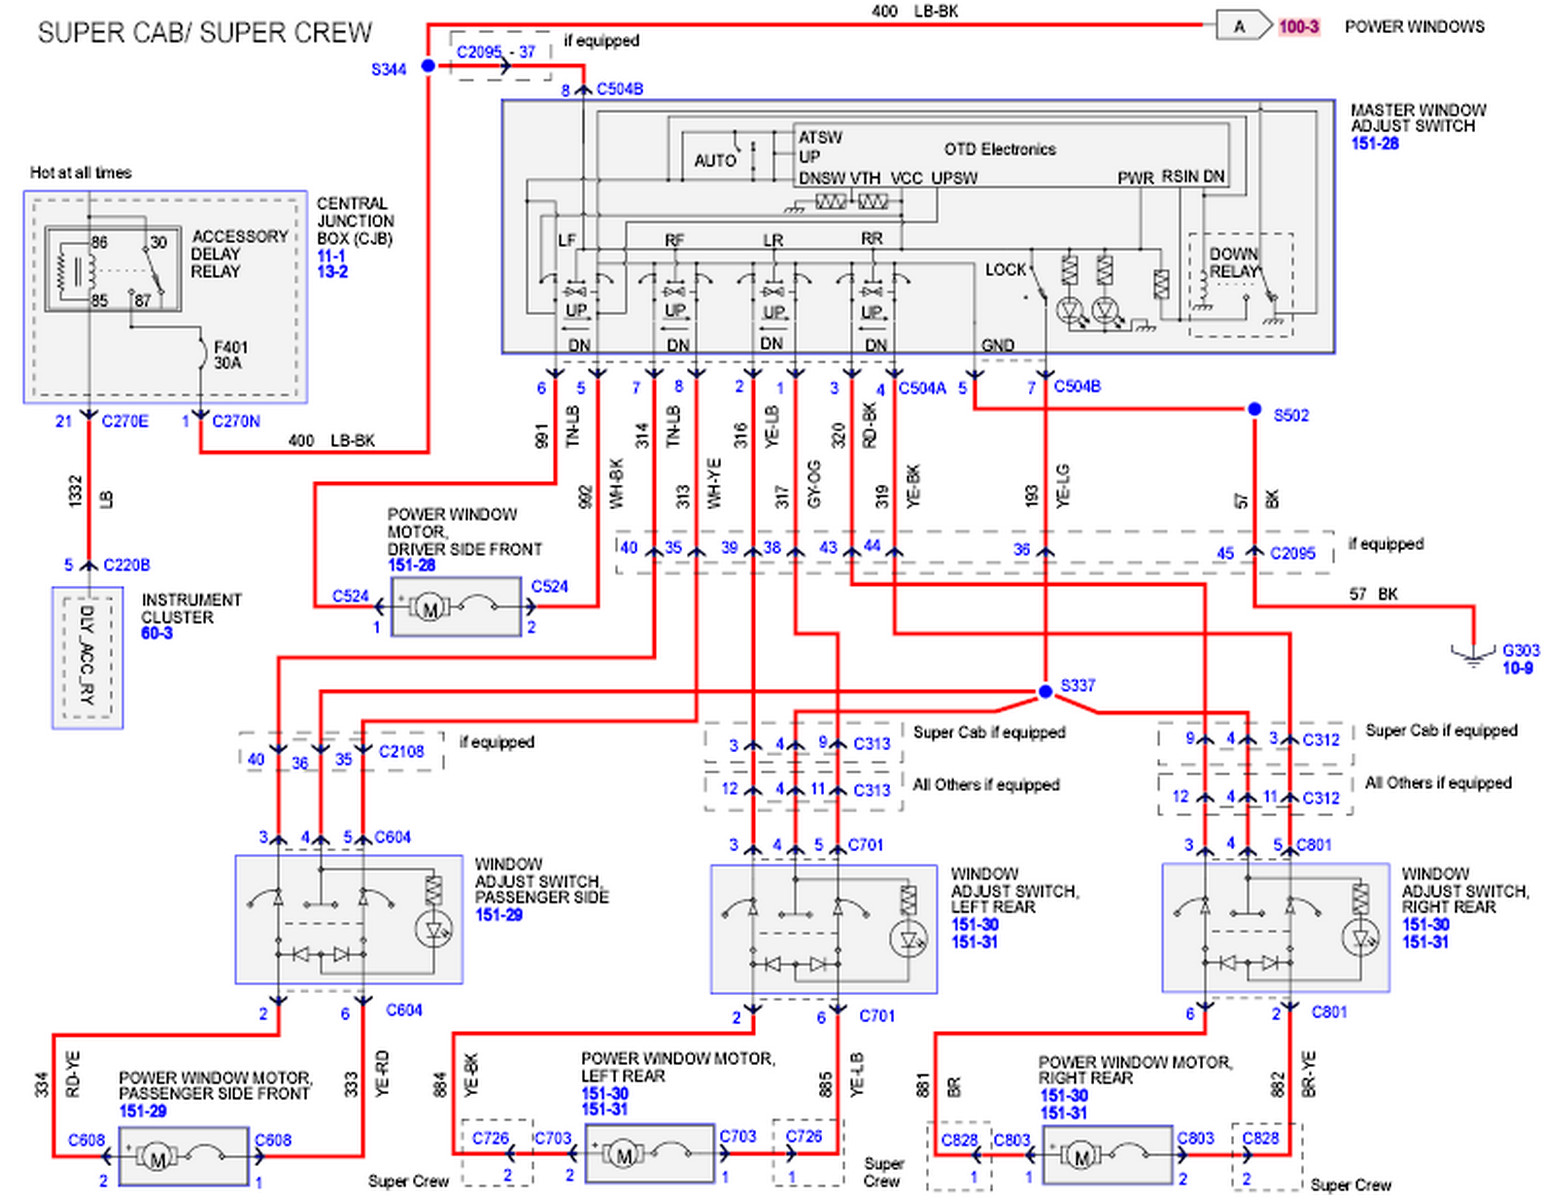 ford power window diagram best wiring diagram 99 ford f 150 power window wiring diagram [ 1544 x 1200 Pixel ]